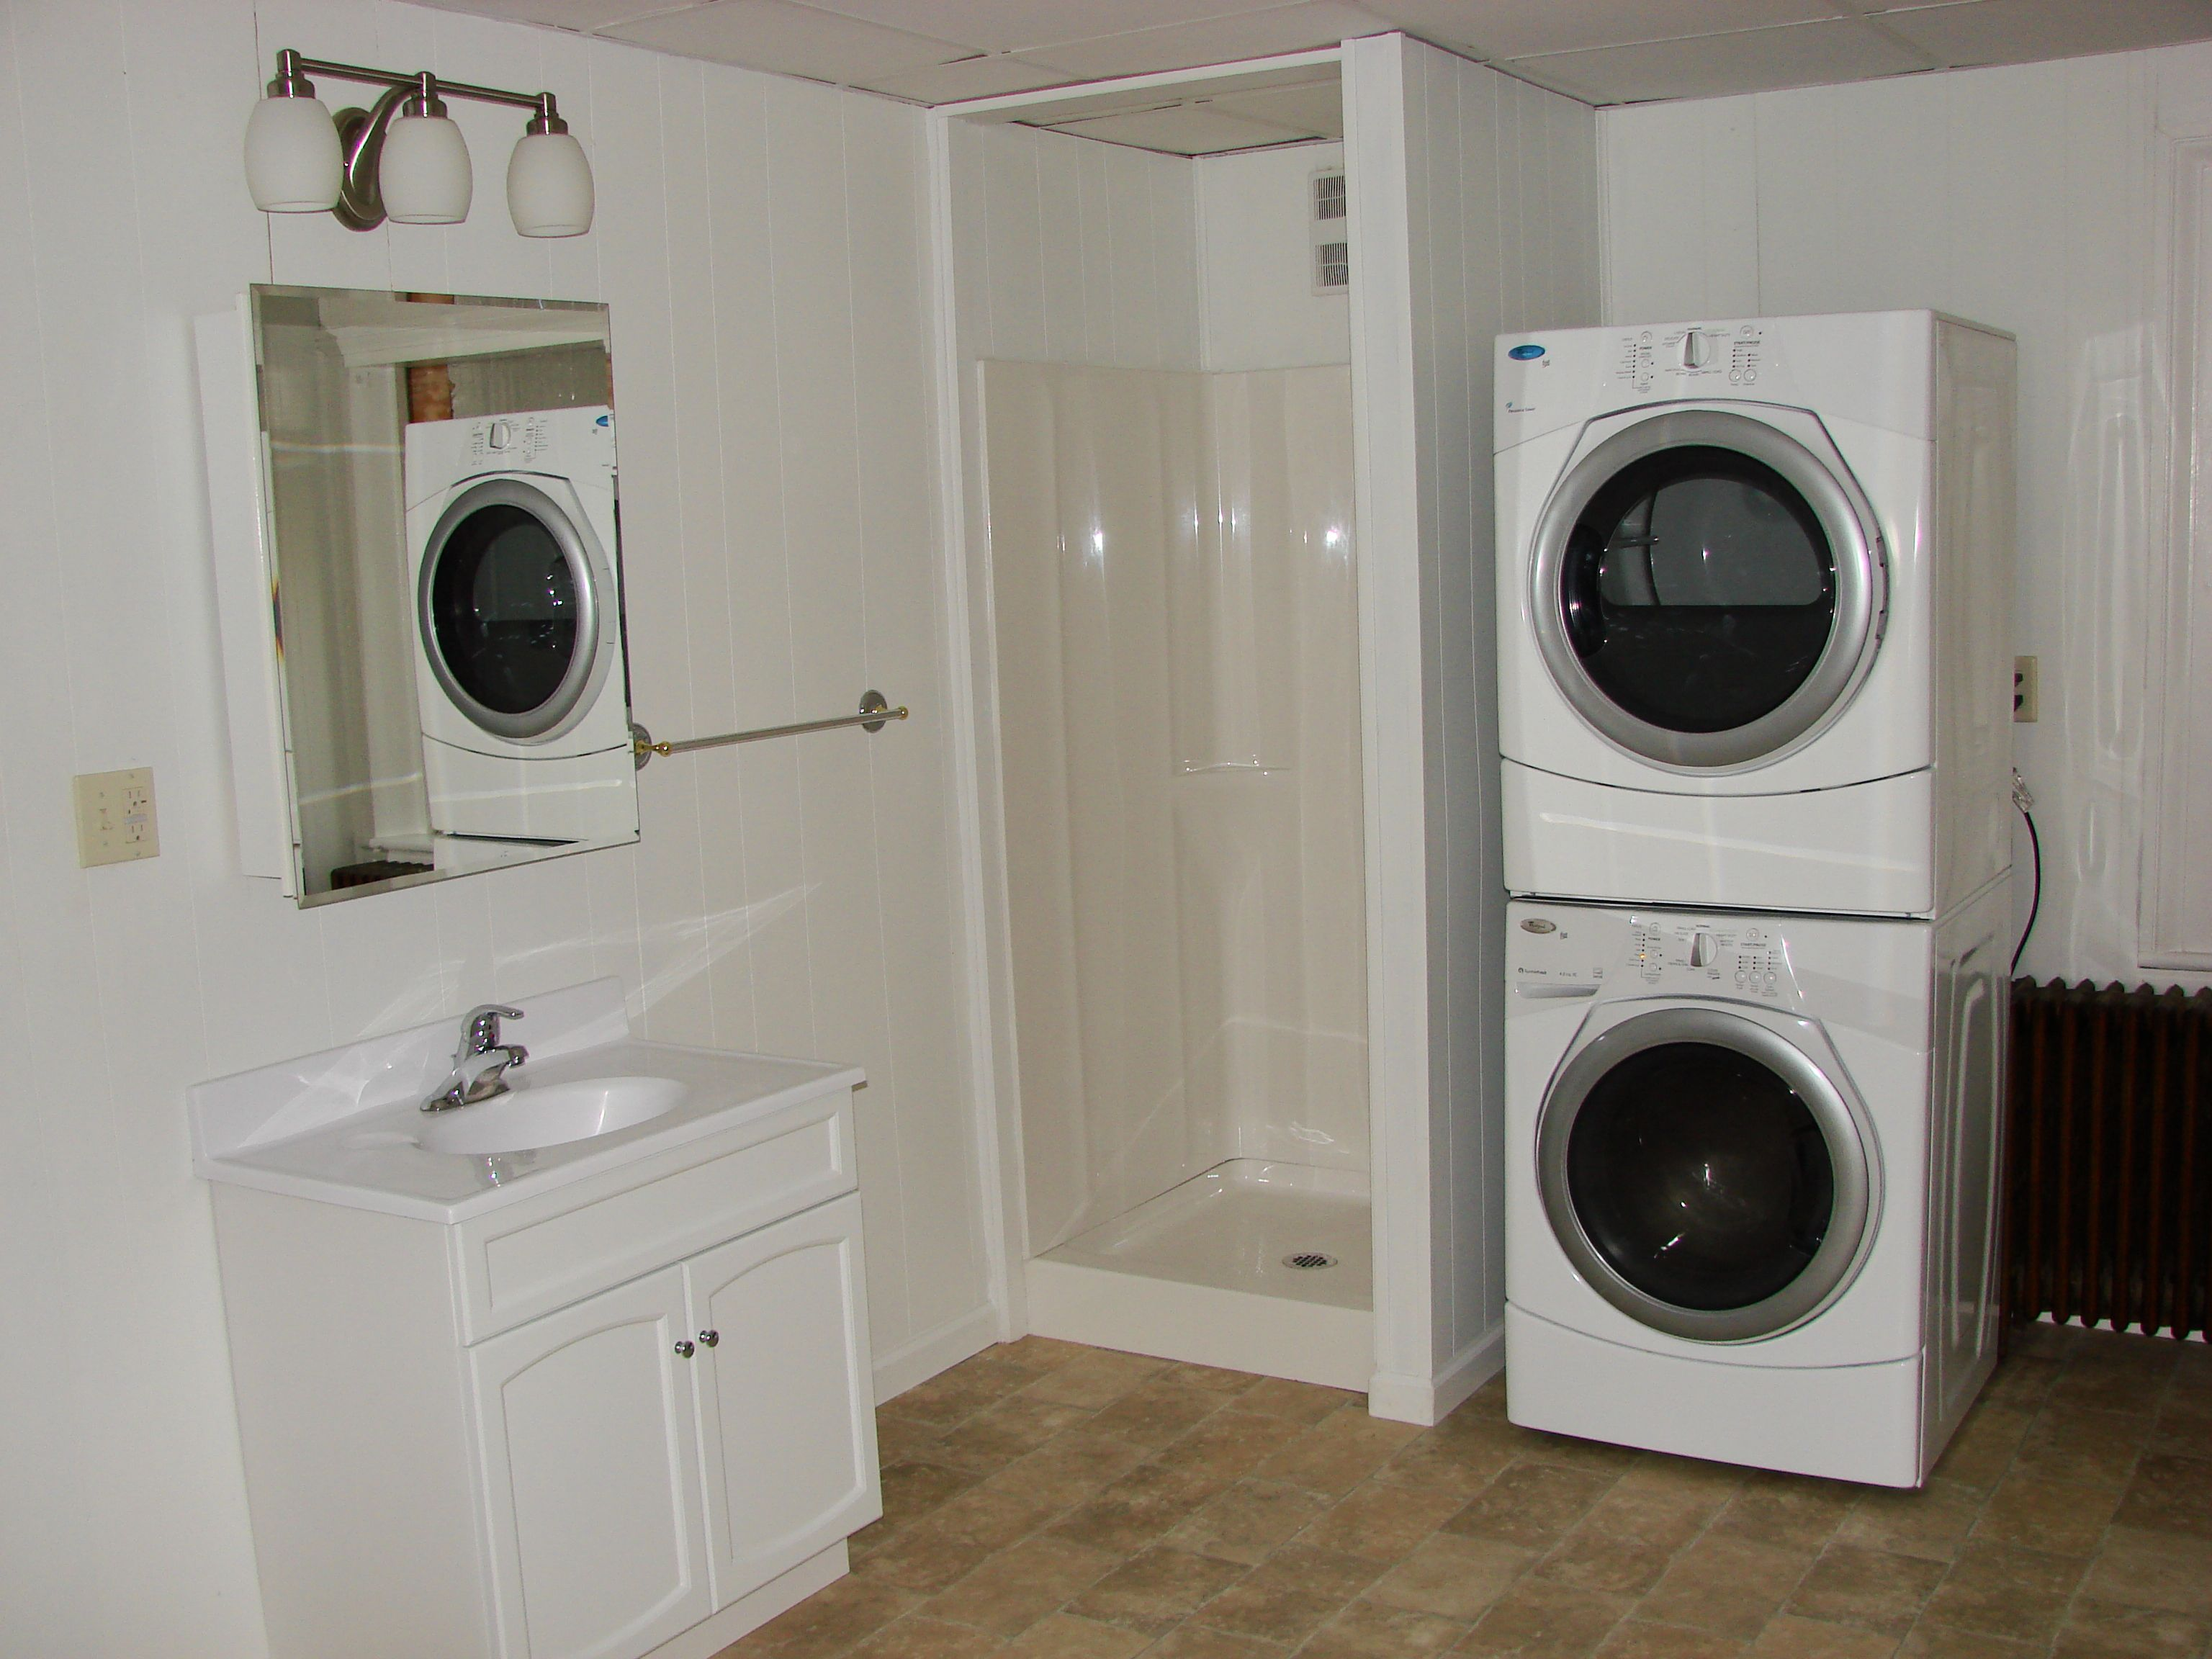 Cool white wash machine and dry machine on the side of for Laundry in bathroom ideas